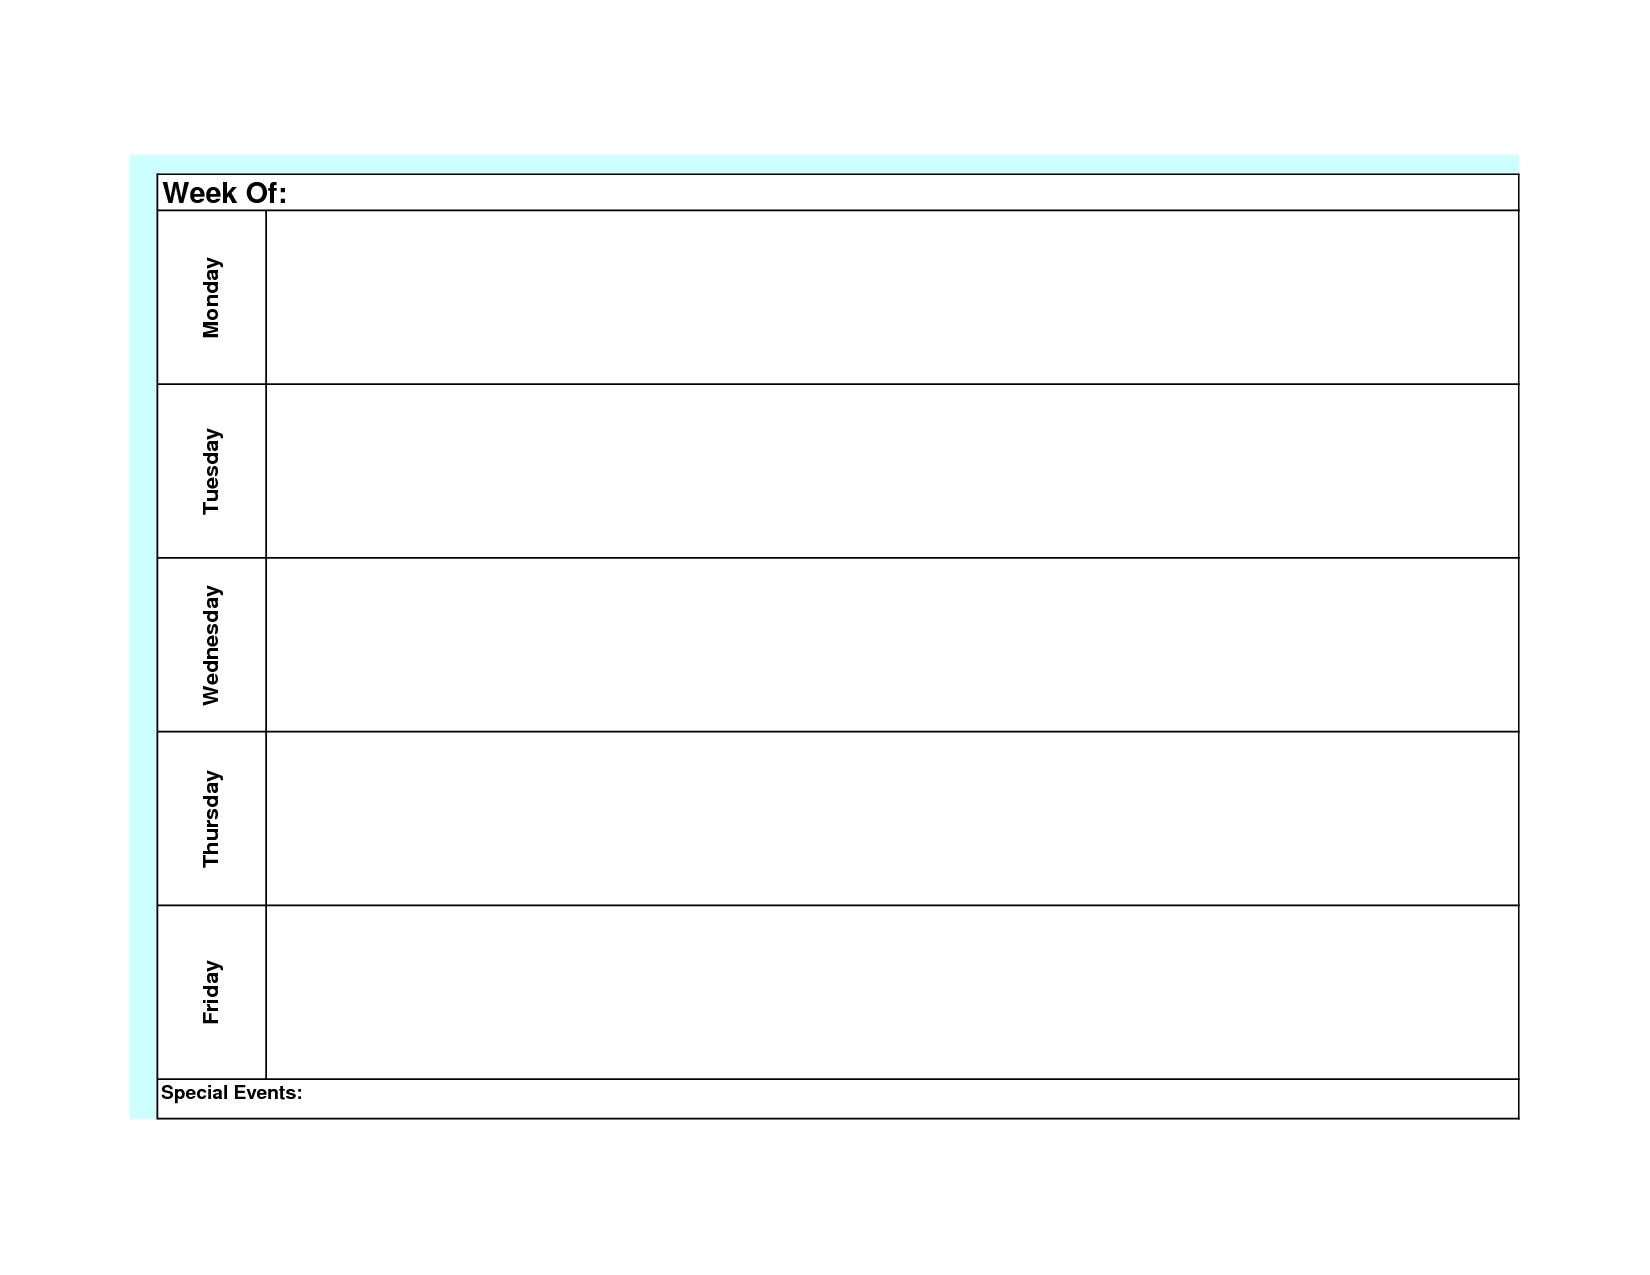 Blank Weekly Calendar Monday Through Friday Template Planner To | Smorad in Free Printable Calendar Monday Through Friday With Notes